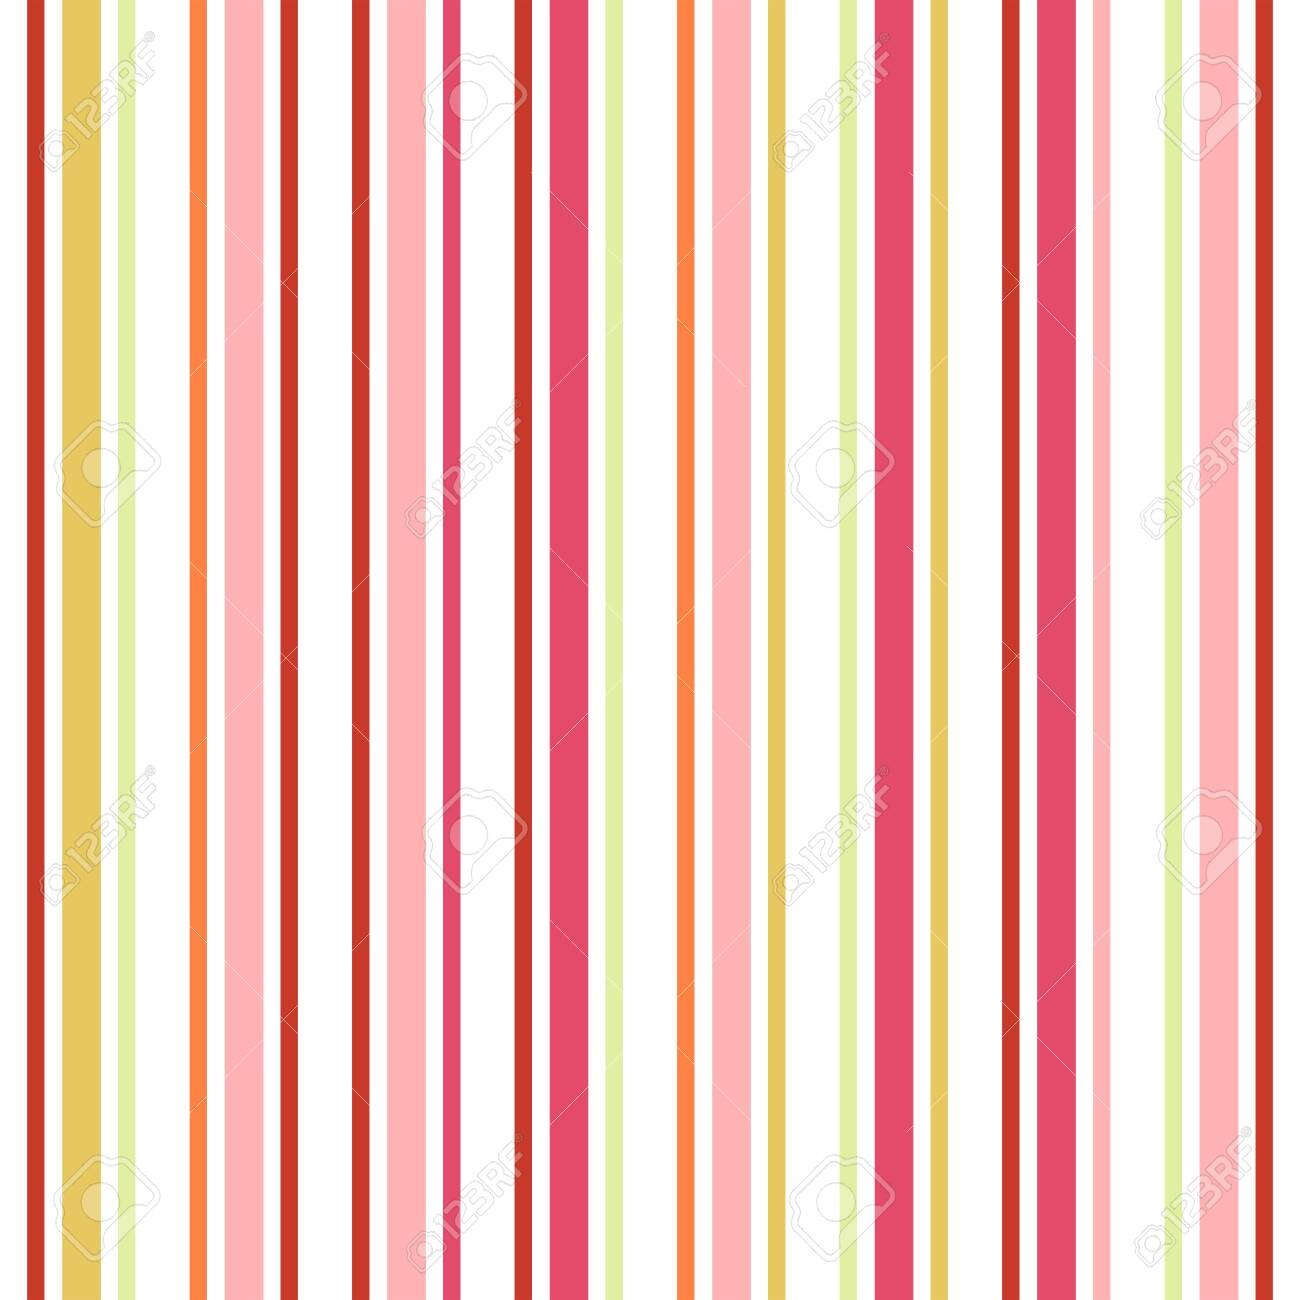 Vertical Stripes Seamless Pattern Male Female Childrens Modern Royalty Free Cliparts Vectors And Stock Illustration Image 142029365